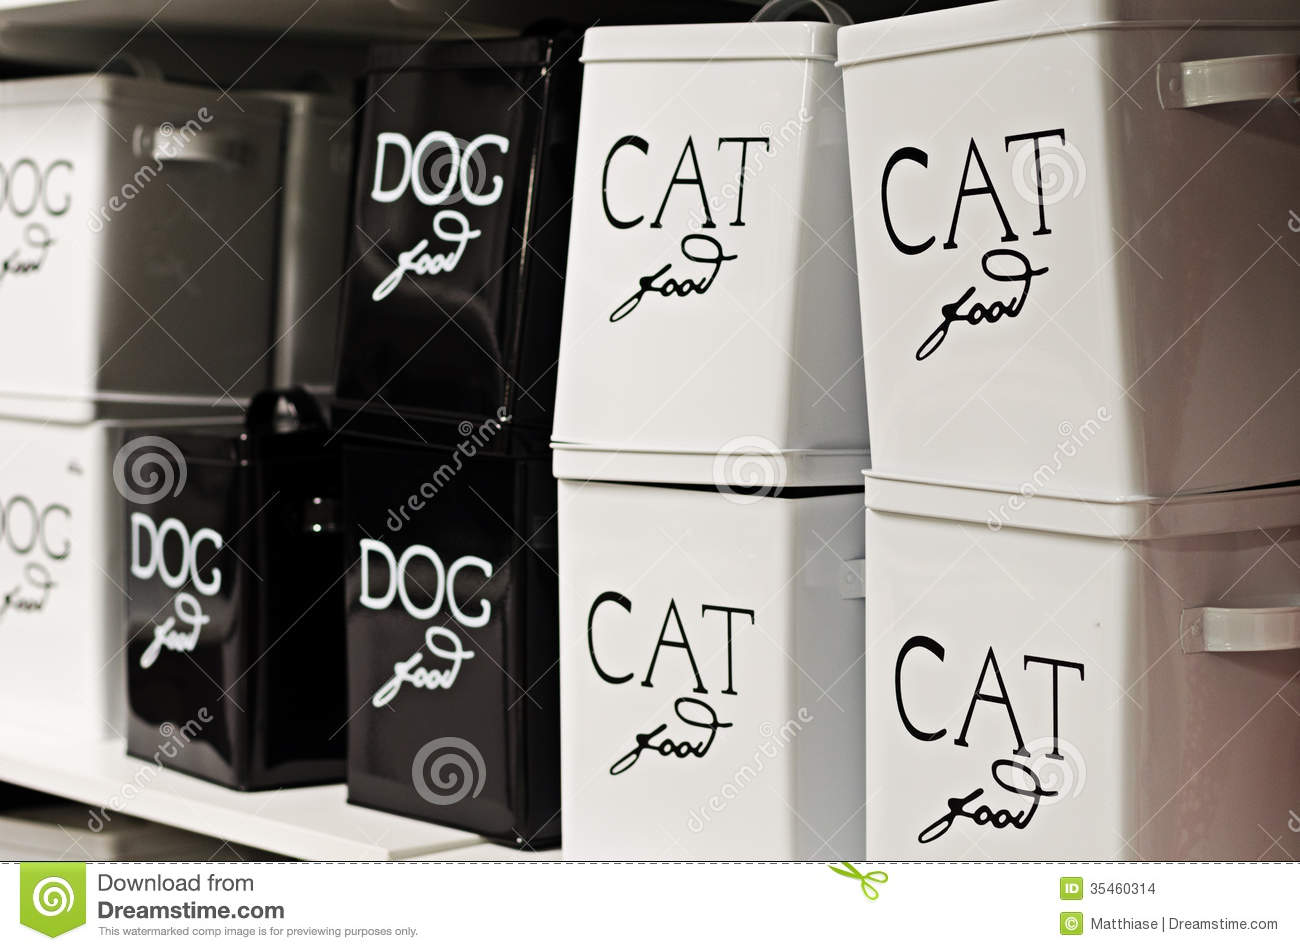 black cat containers dog food - Dog Food Containers